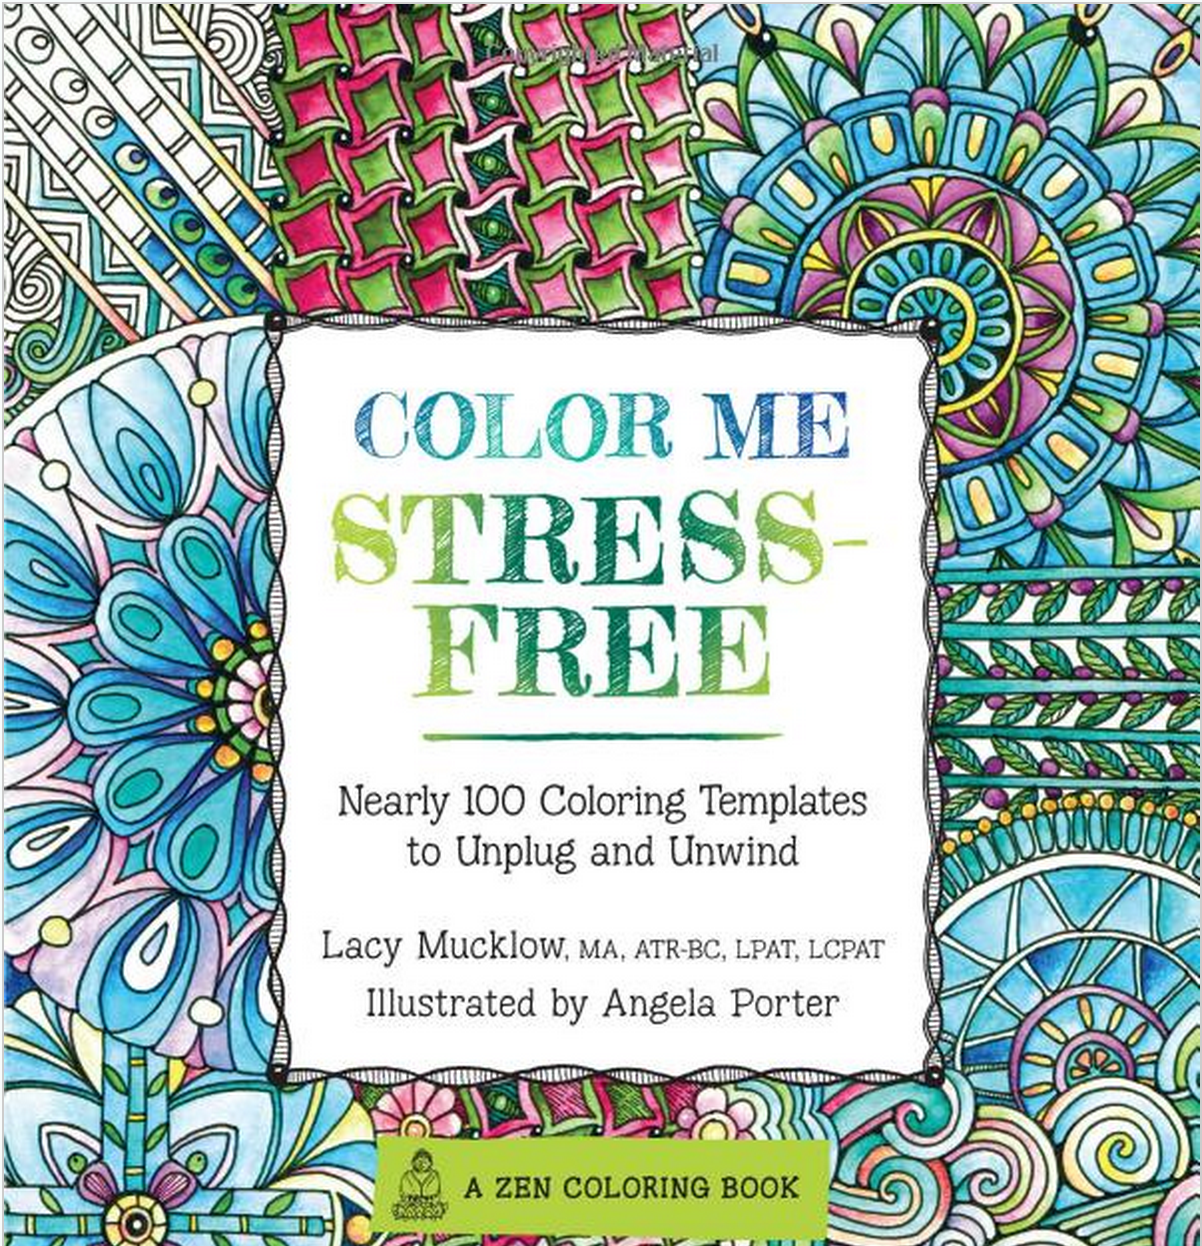 How much is the coloring book for adults - Color Me Stress Free Adult Coloring Book